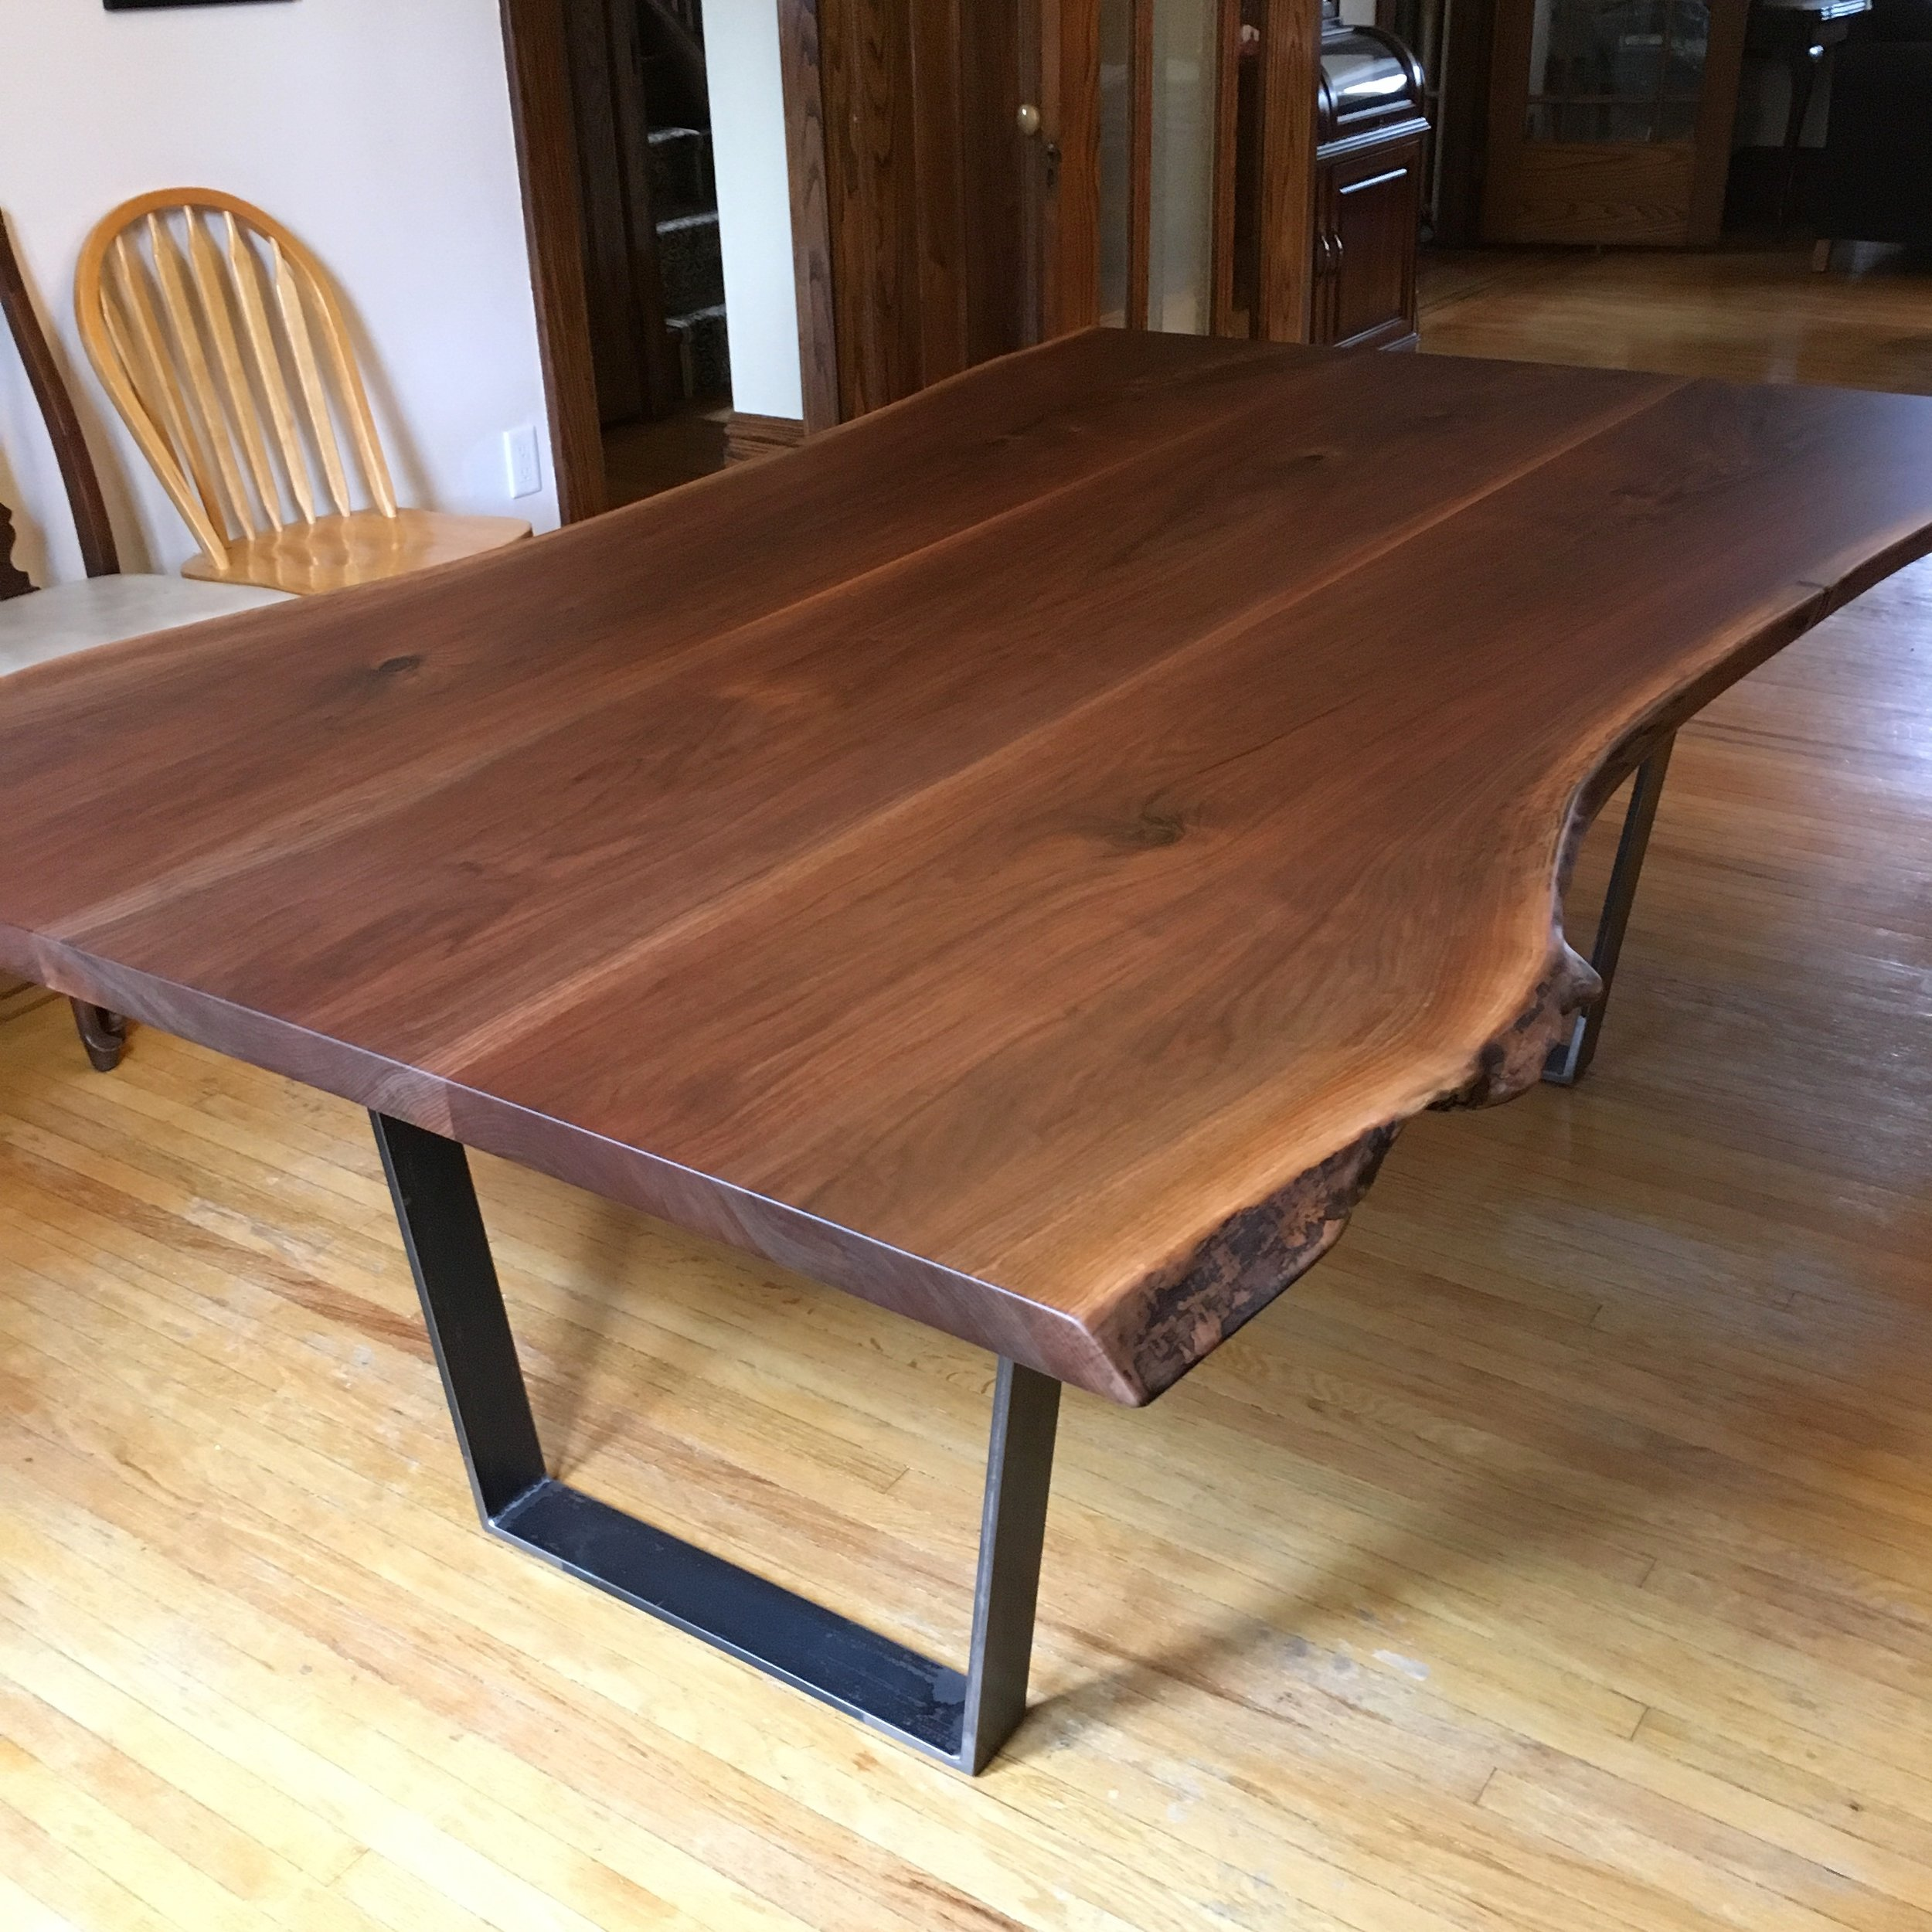 Live edge walnut top with trapezoid base